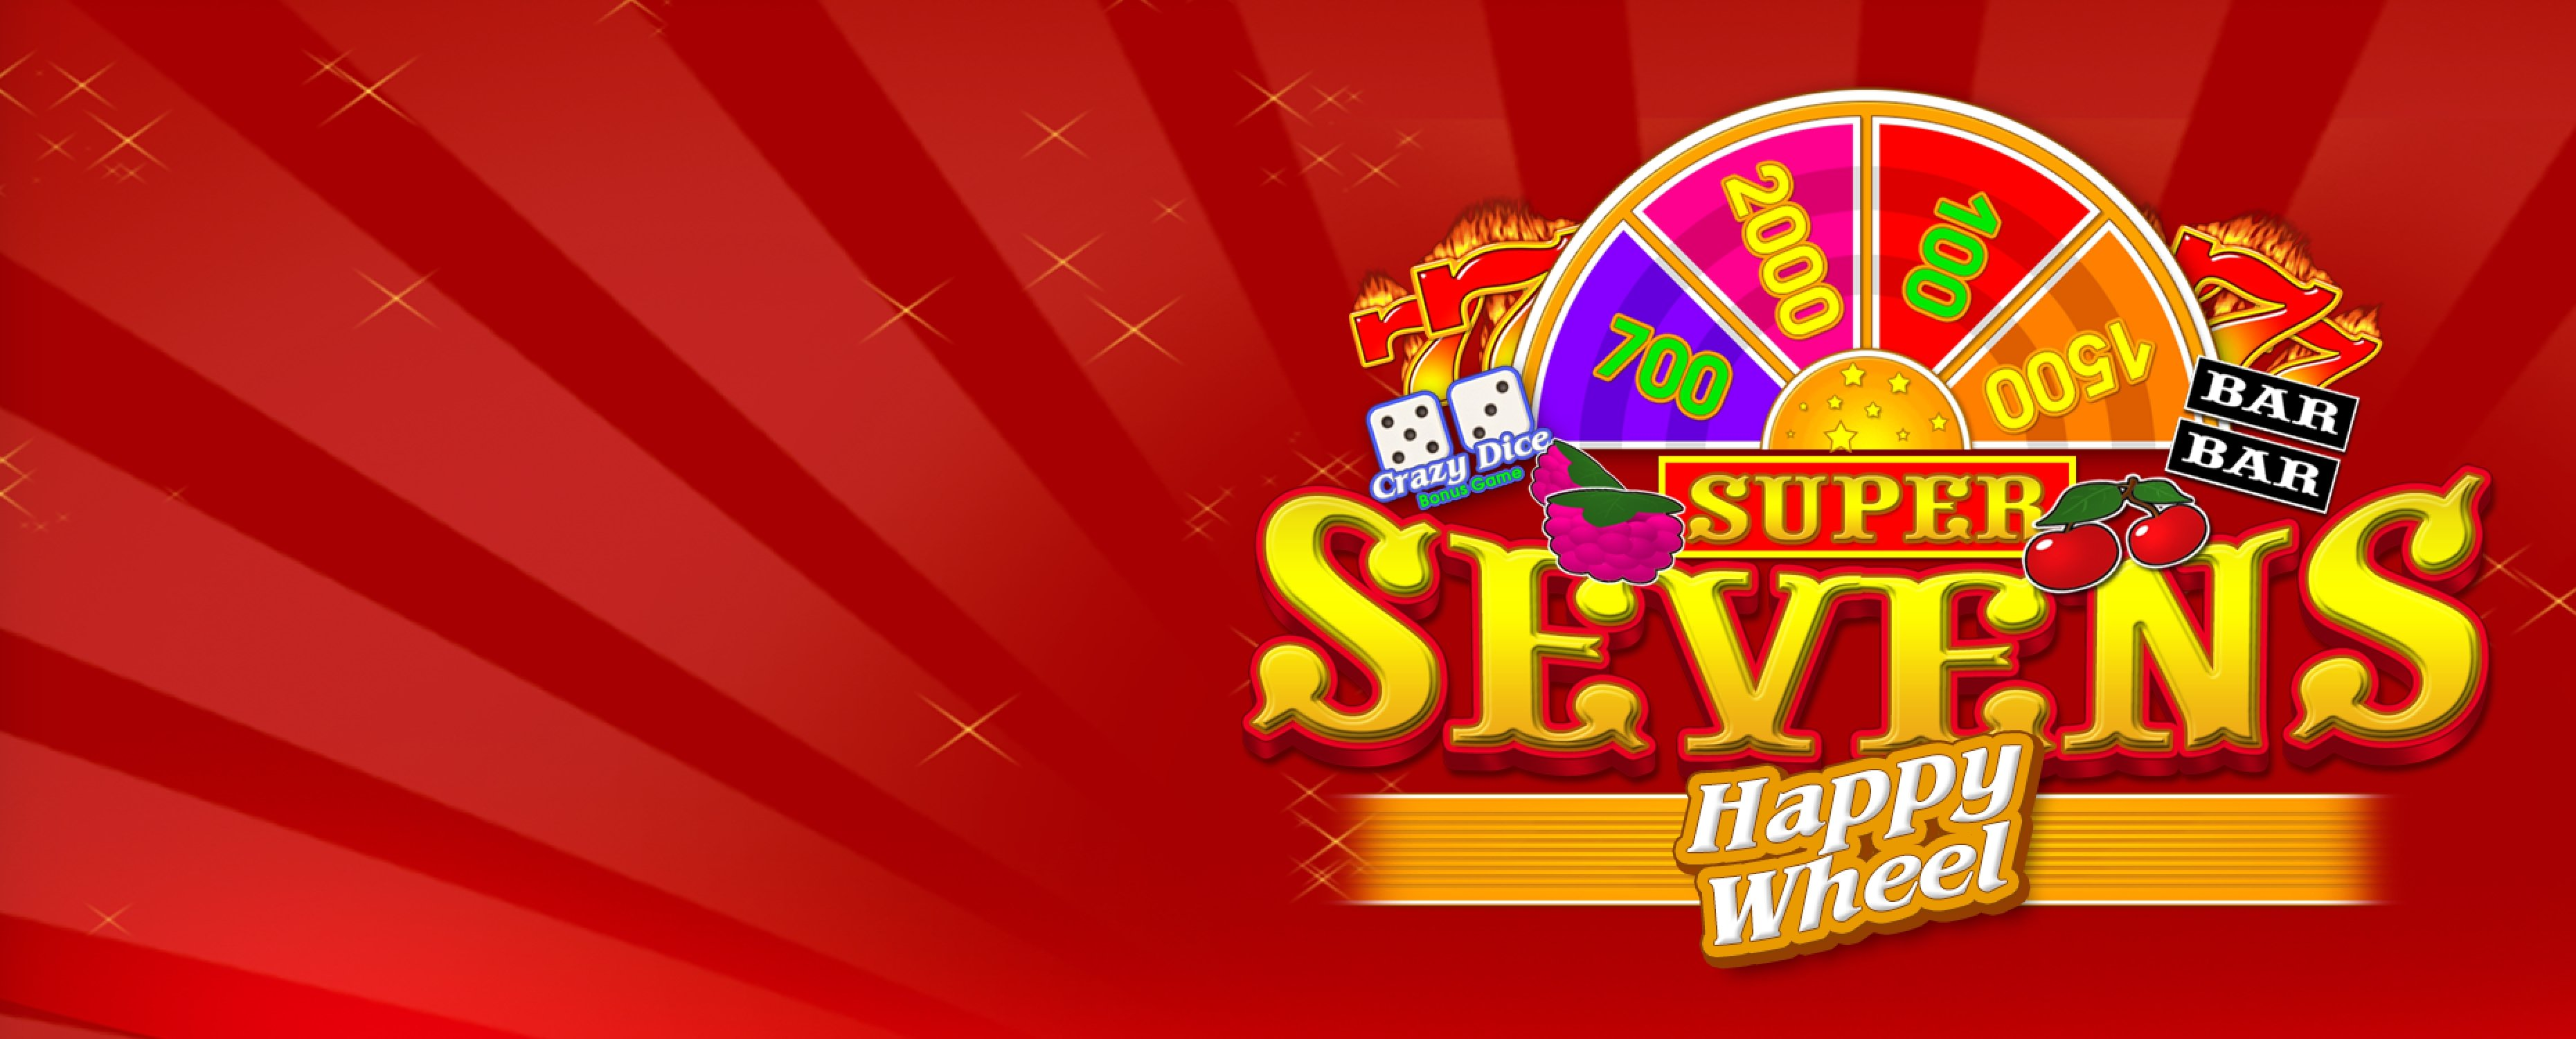 Reels in Super Sevens Happy Wheel Slot Game by Belatra Games